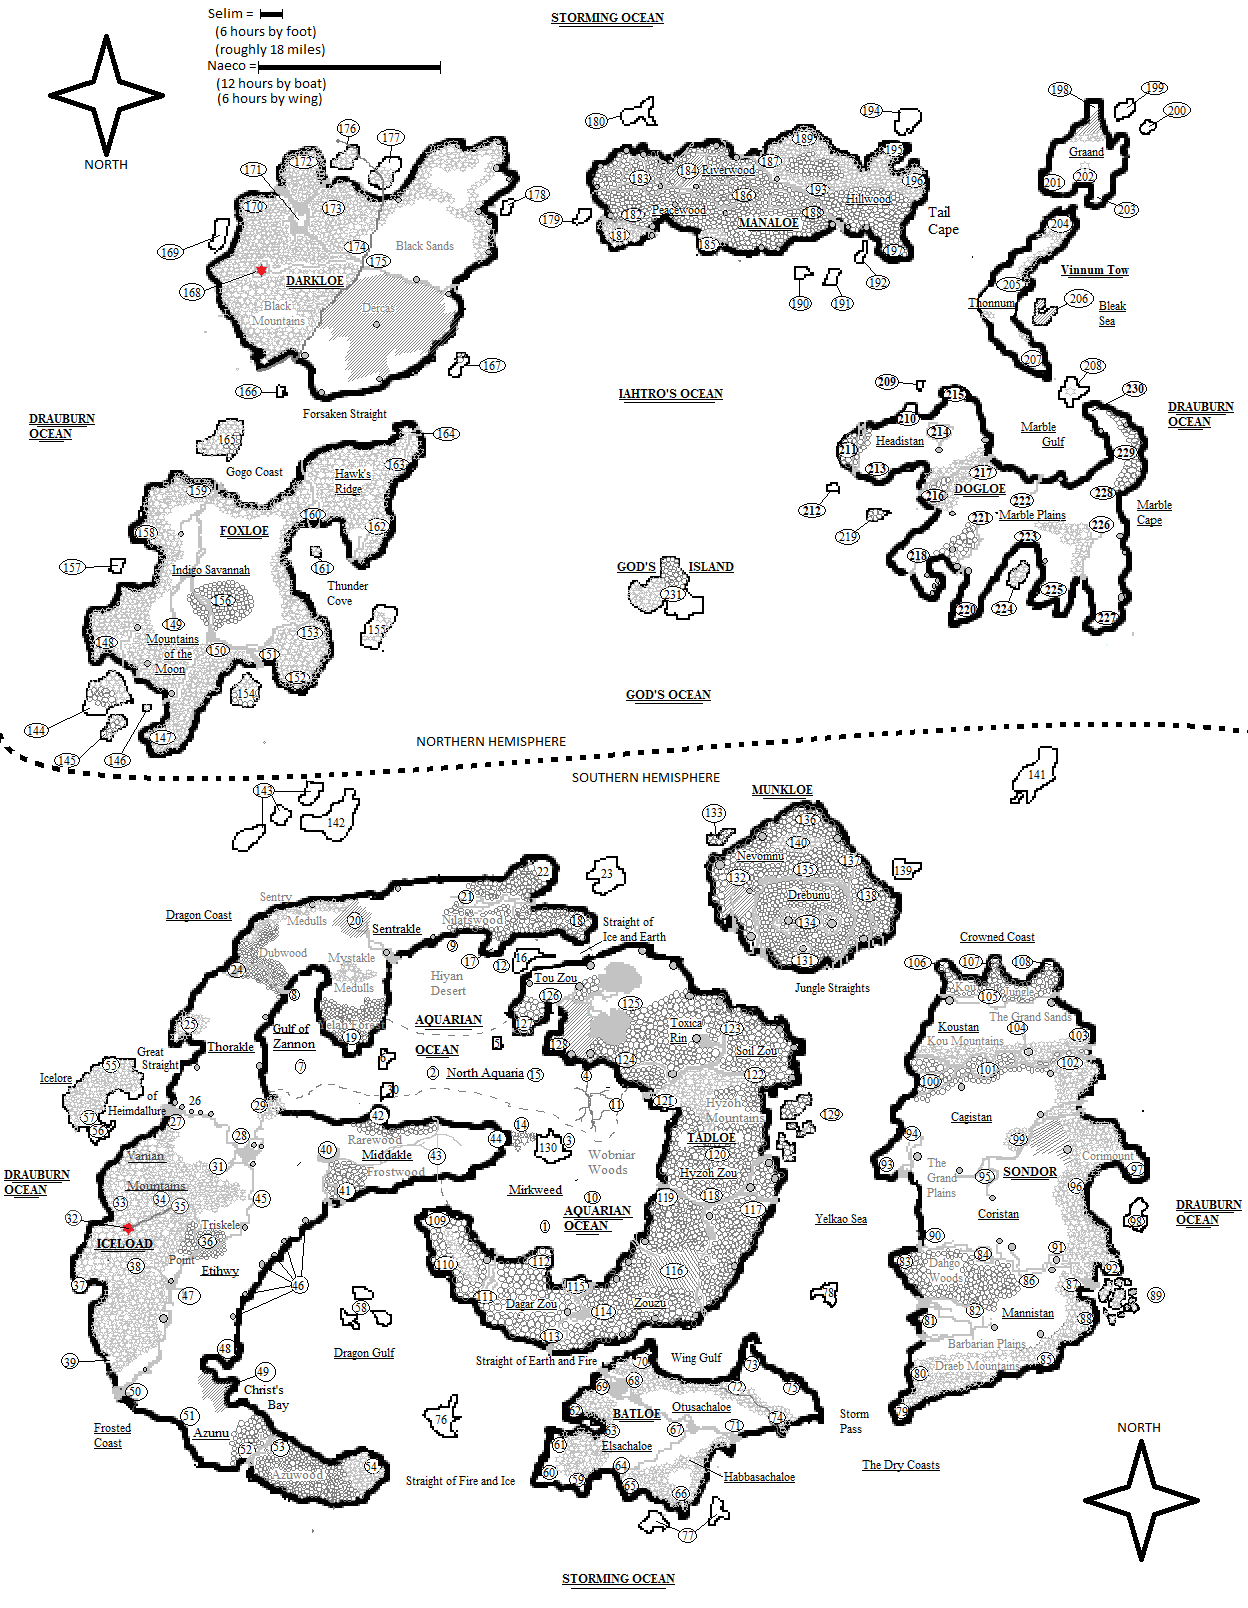 Don't mind the ridiculous Northern/Southern Hemipshere design, what can I say? It was created by a Knome.